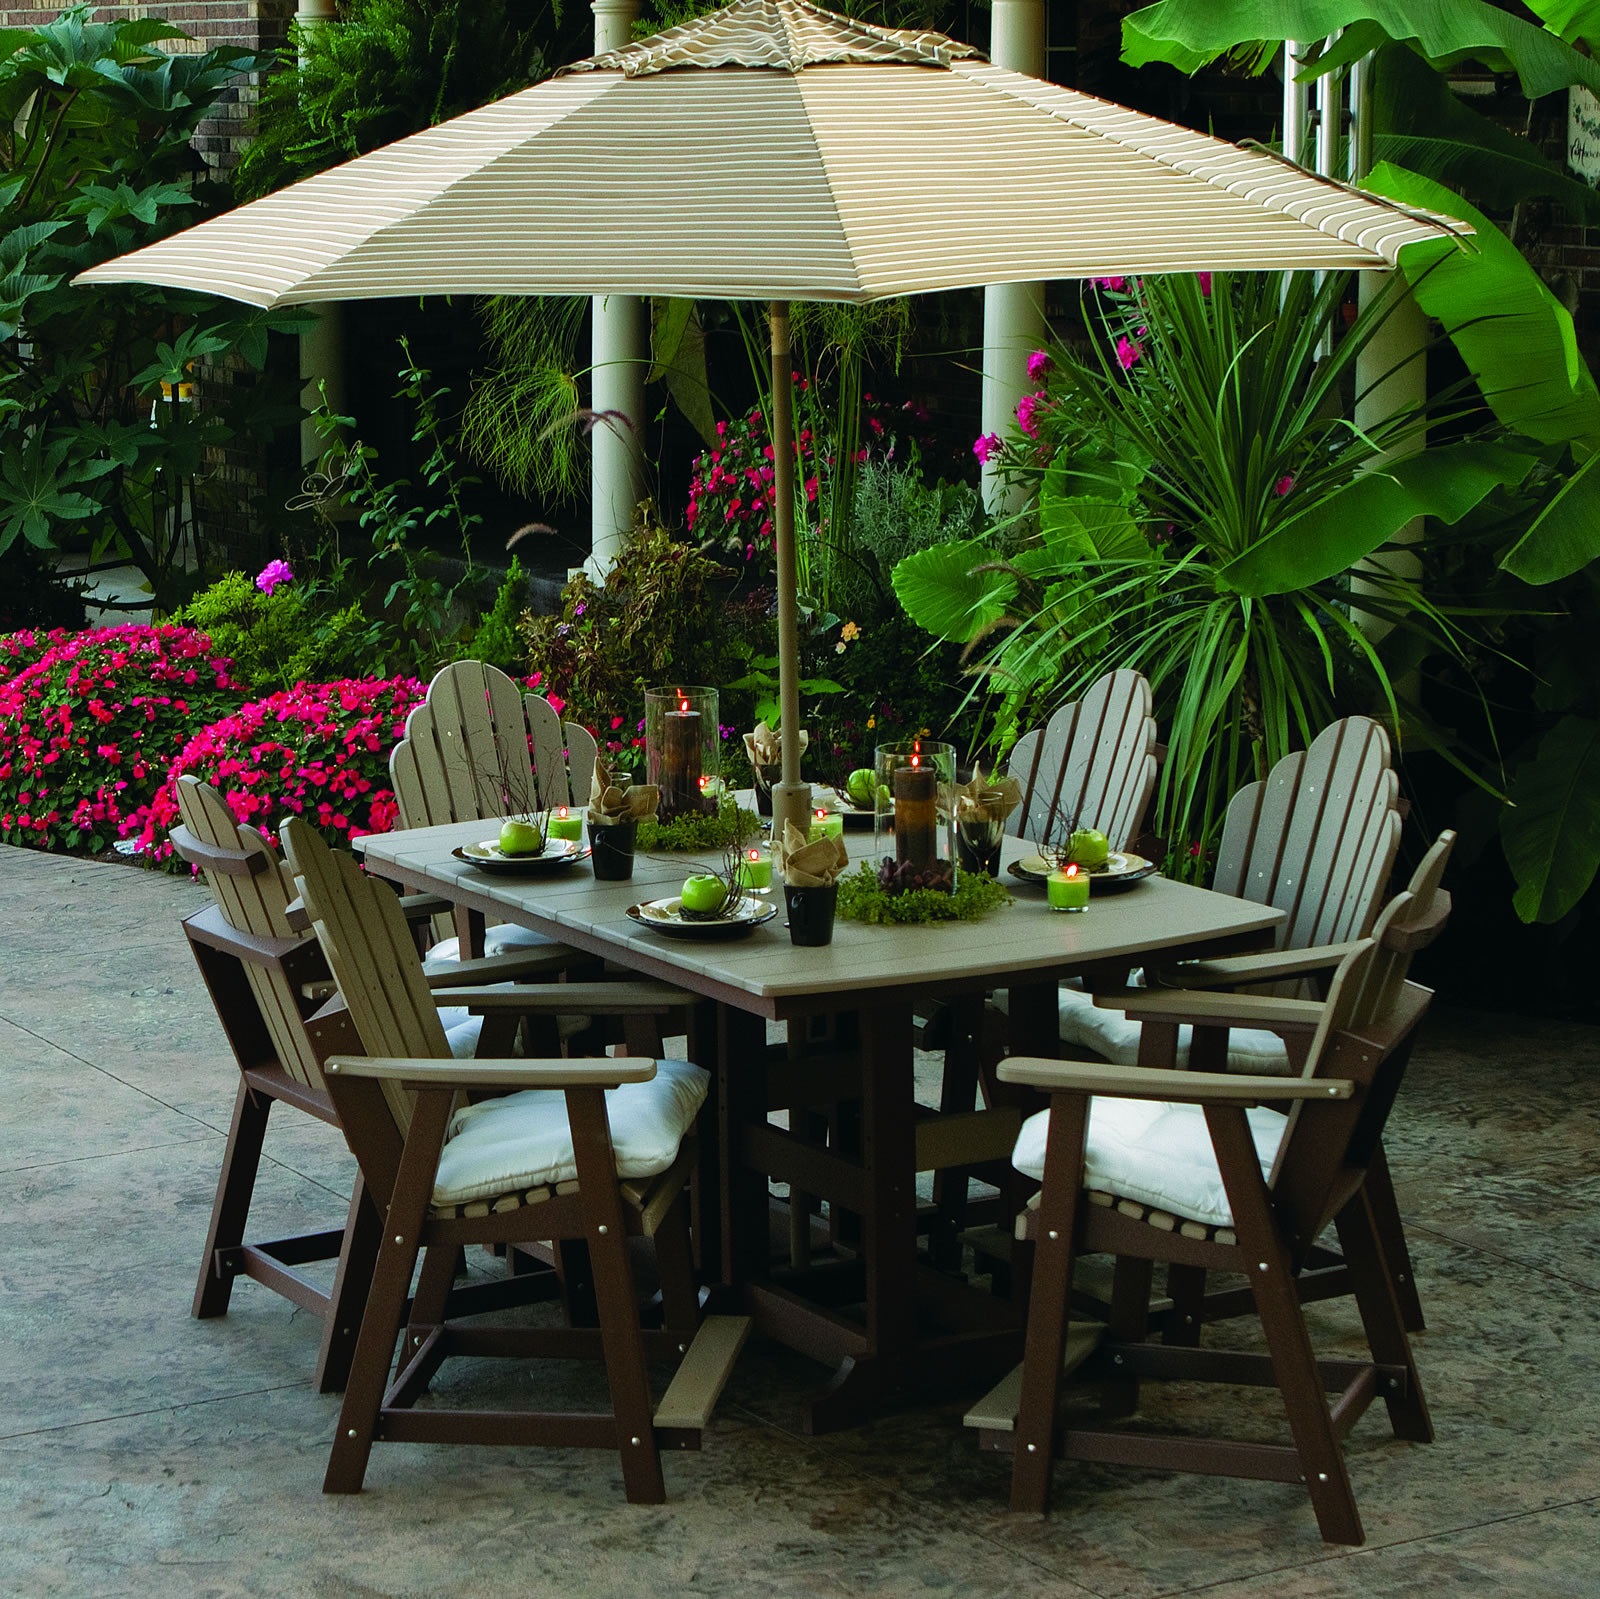 Berlin Gardens Iris Garden Classic Counter Dining Set Berlin Gardens Poly Furniture